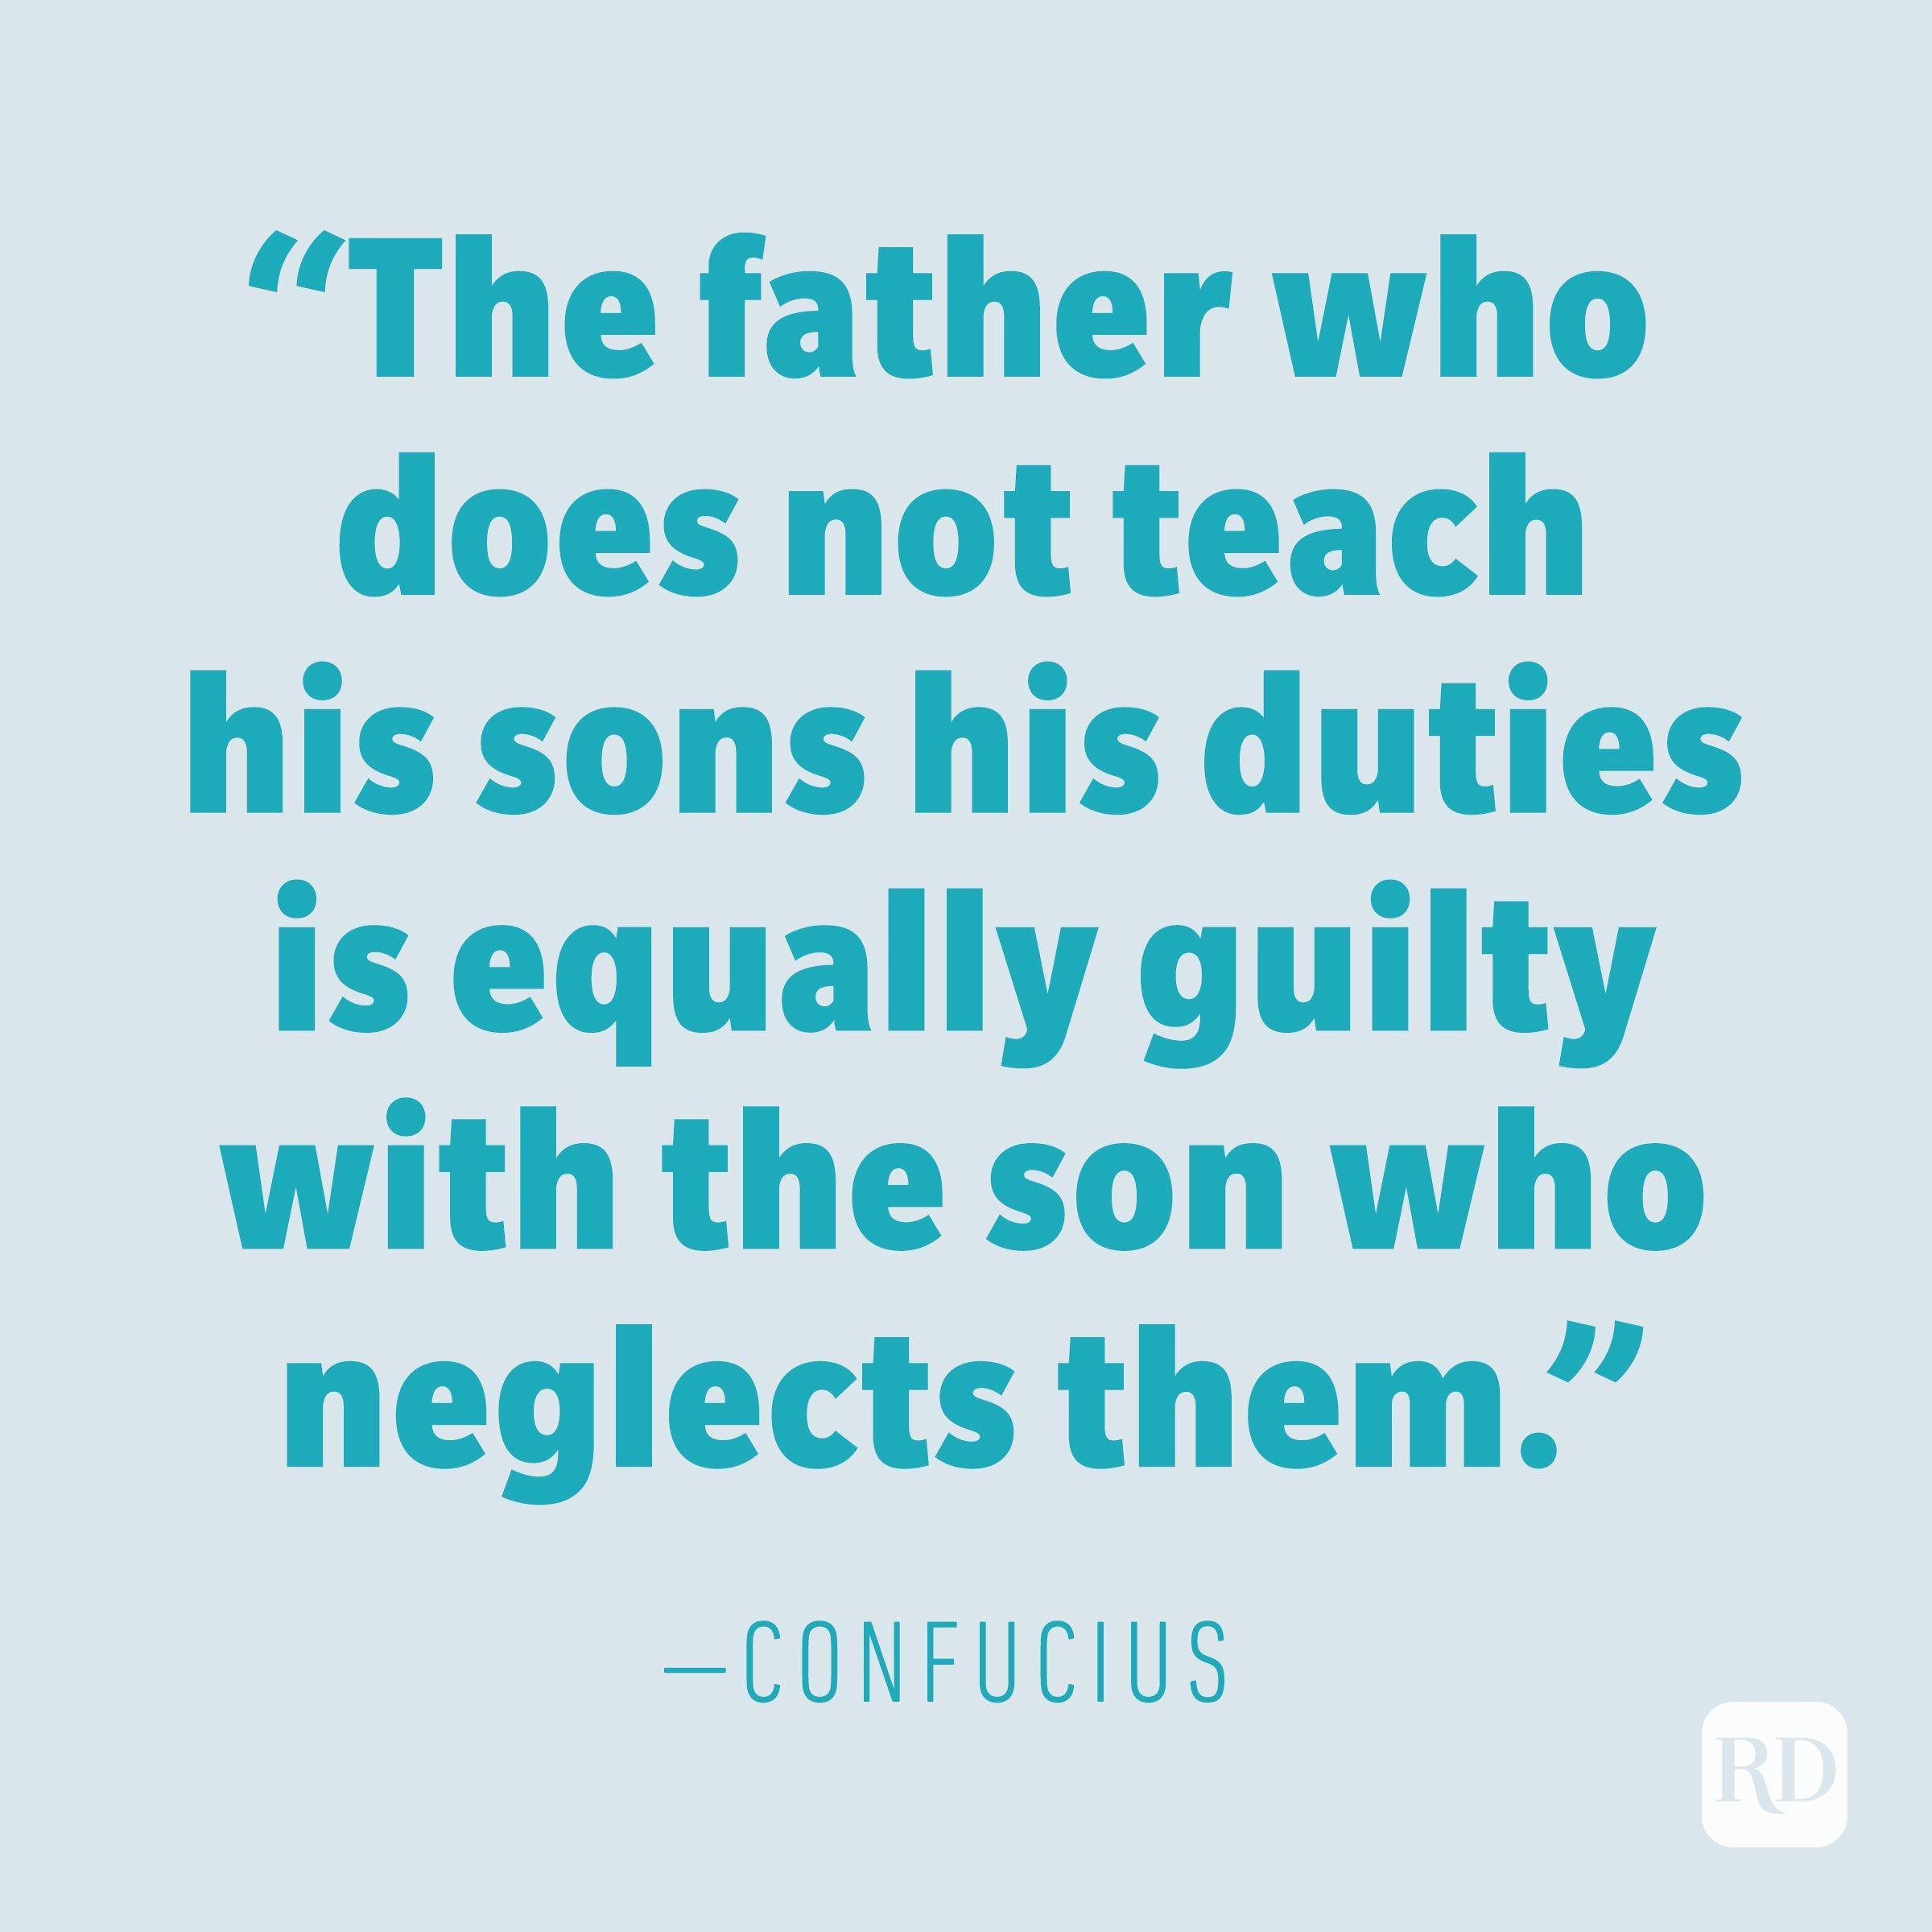 """The father who does not teach his sons his duties is equally guilty with the son who neglects them."" —CONFUCIUS"